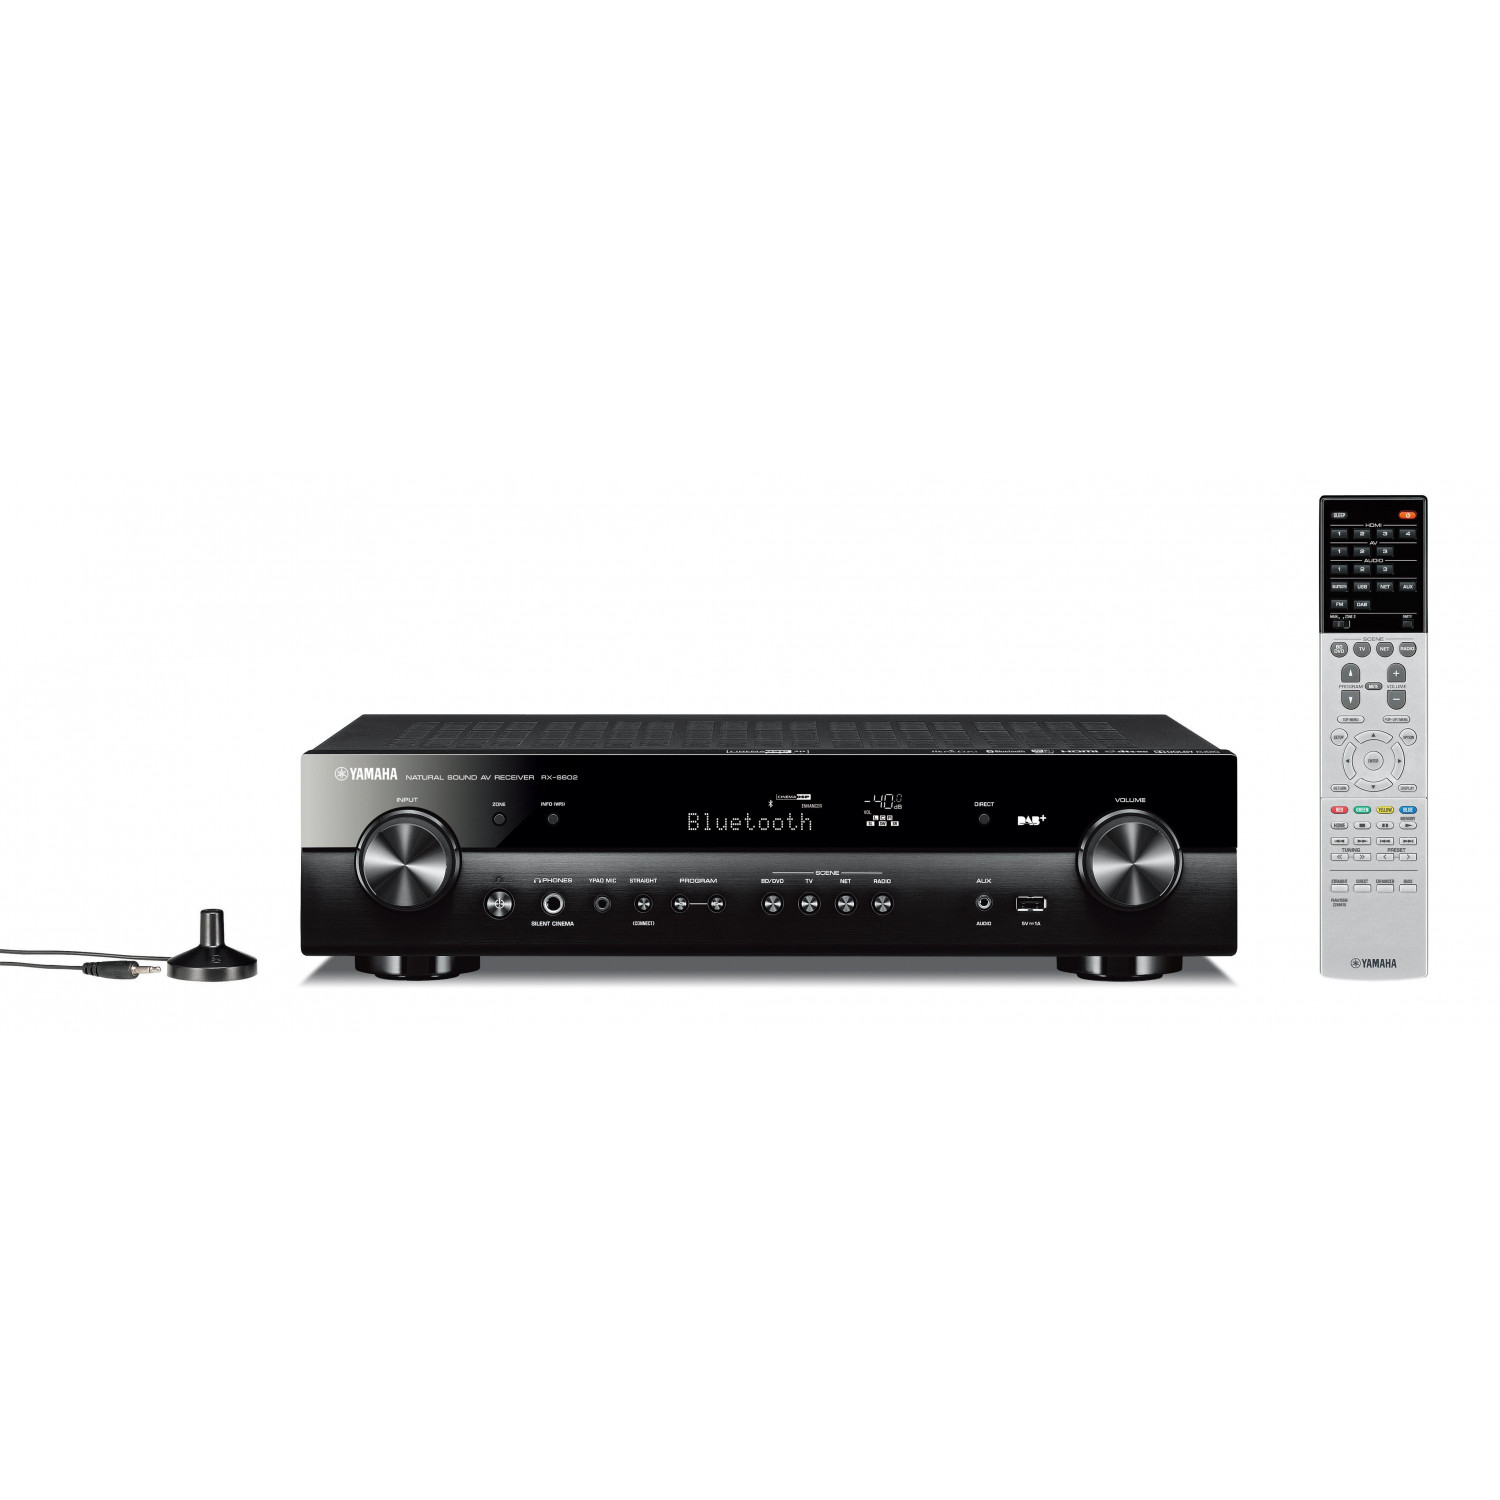 yamaha rx s602 av receiver. Black Bedroom Furniture Sets. Home Design Ideas